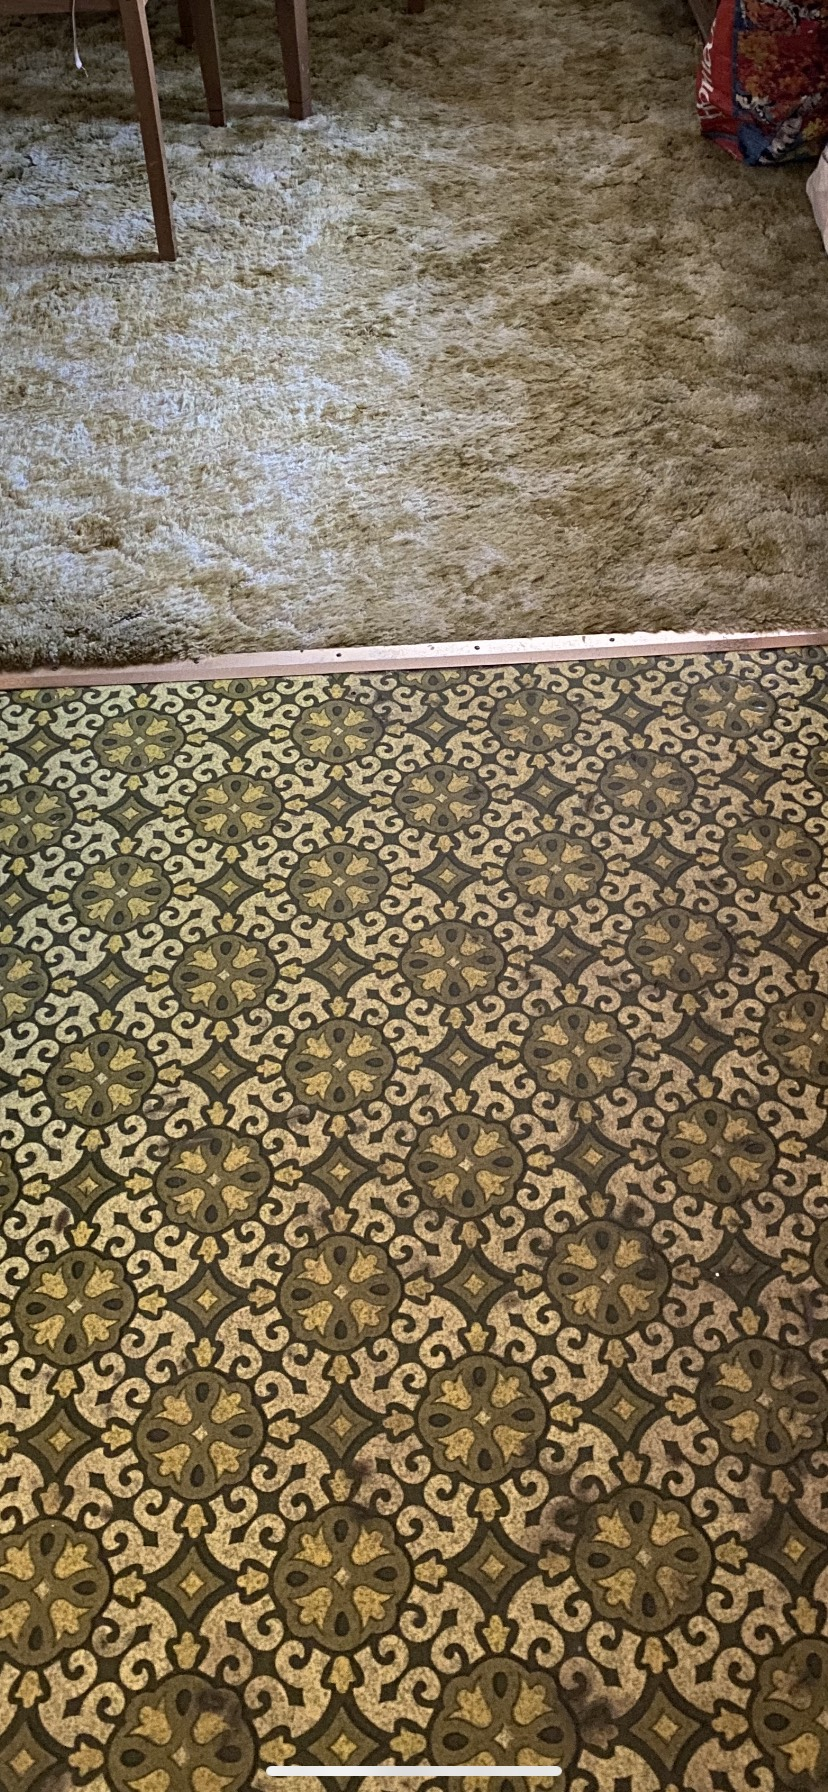 The 1970s called, they want their floor back! ugly floor contest entry photo